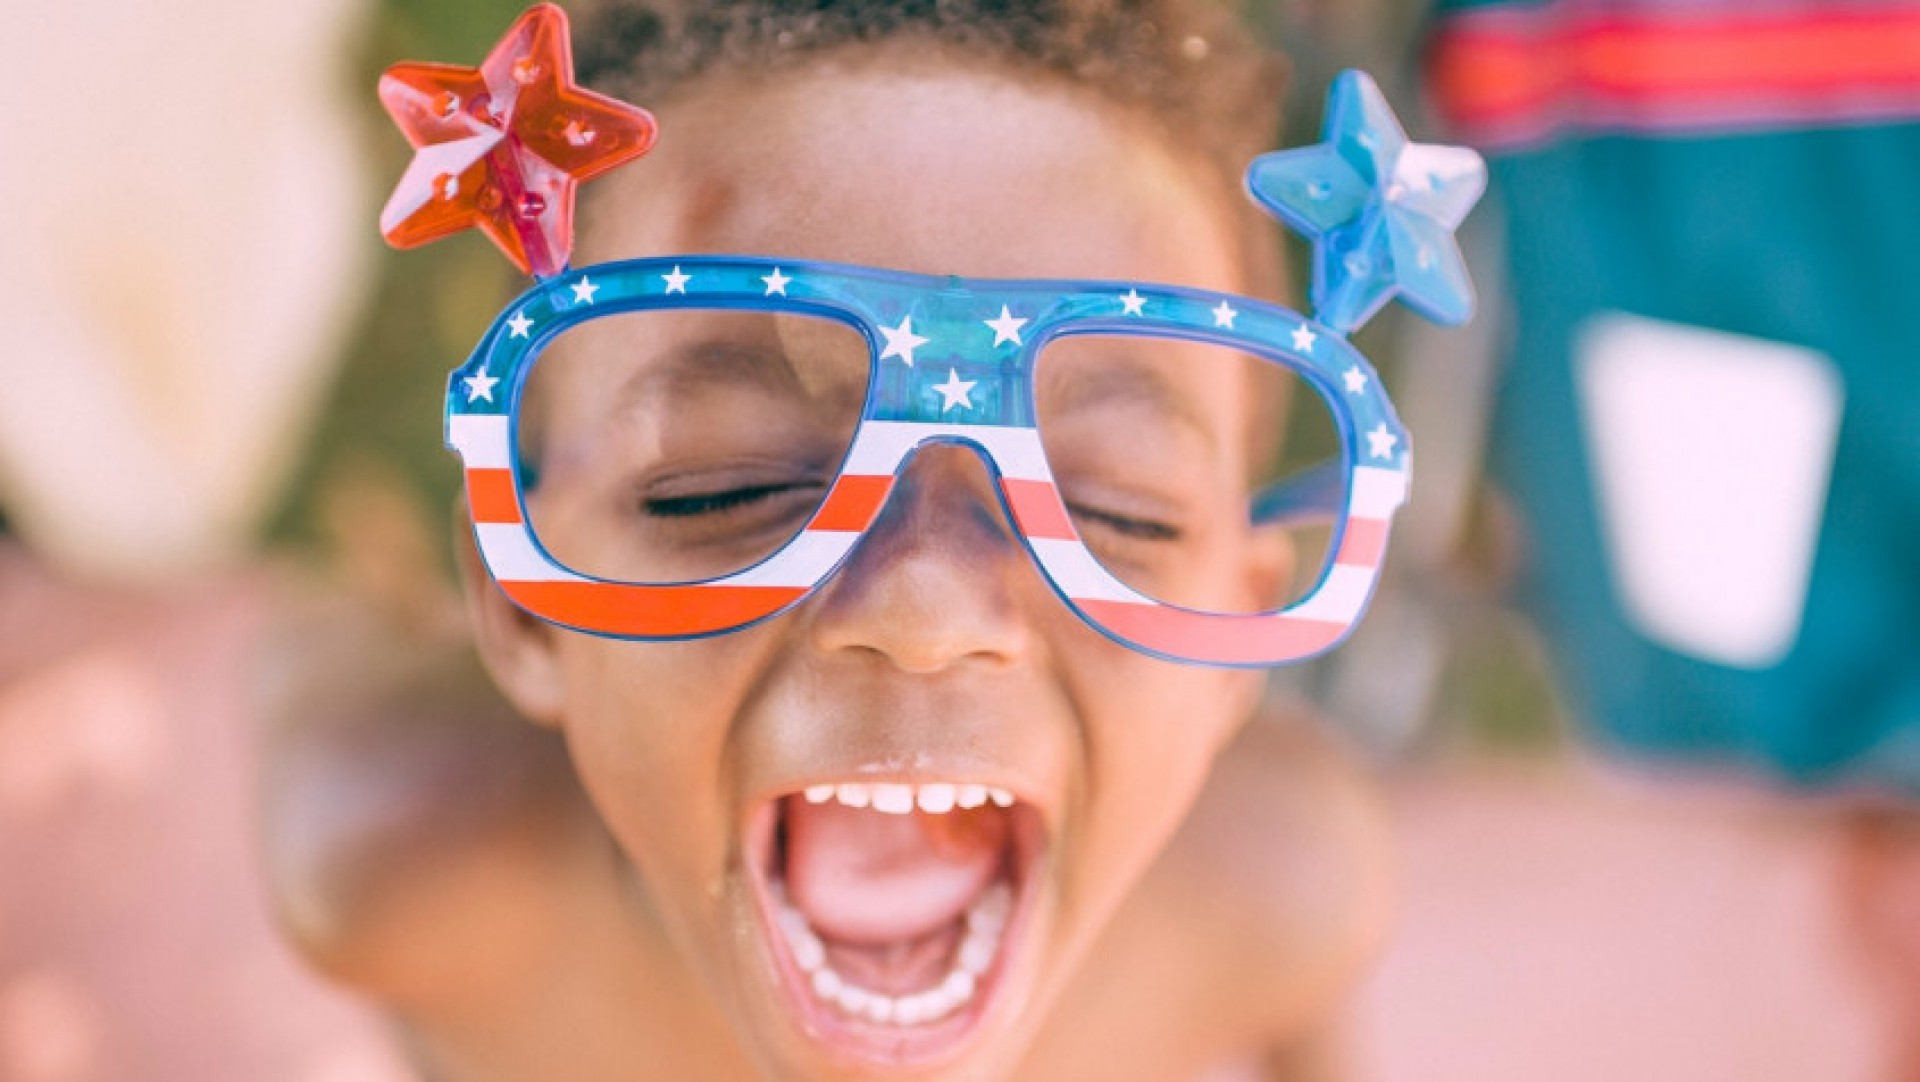 Bangin' Fourth of July Marketing Strategy! Time for fireworks!